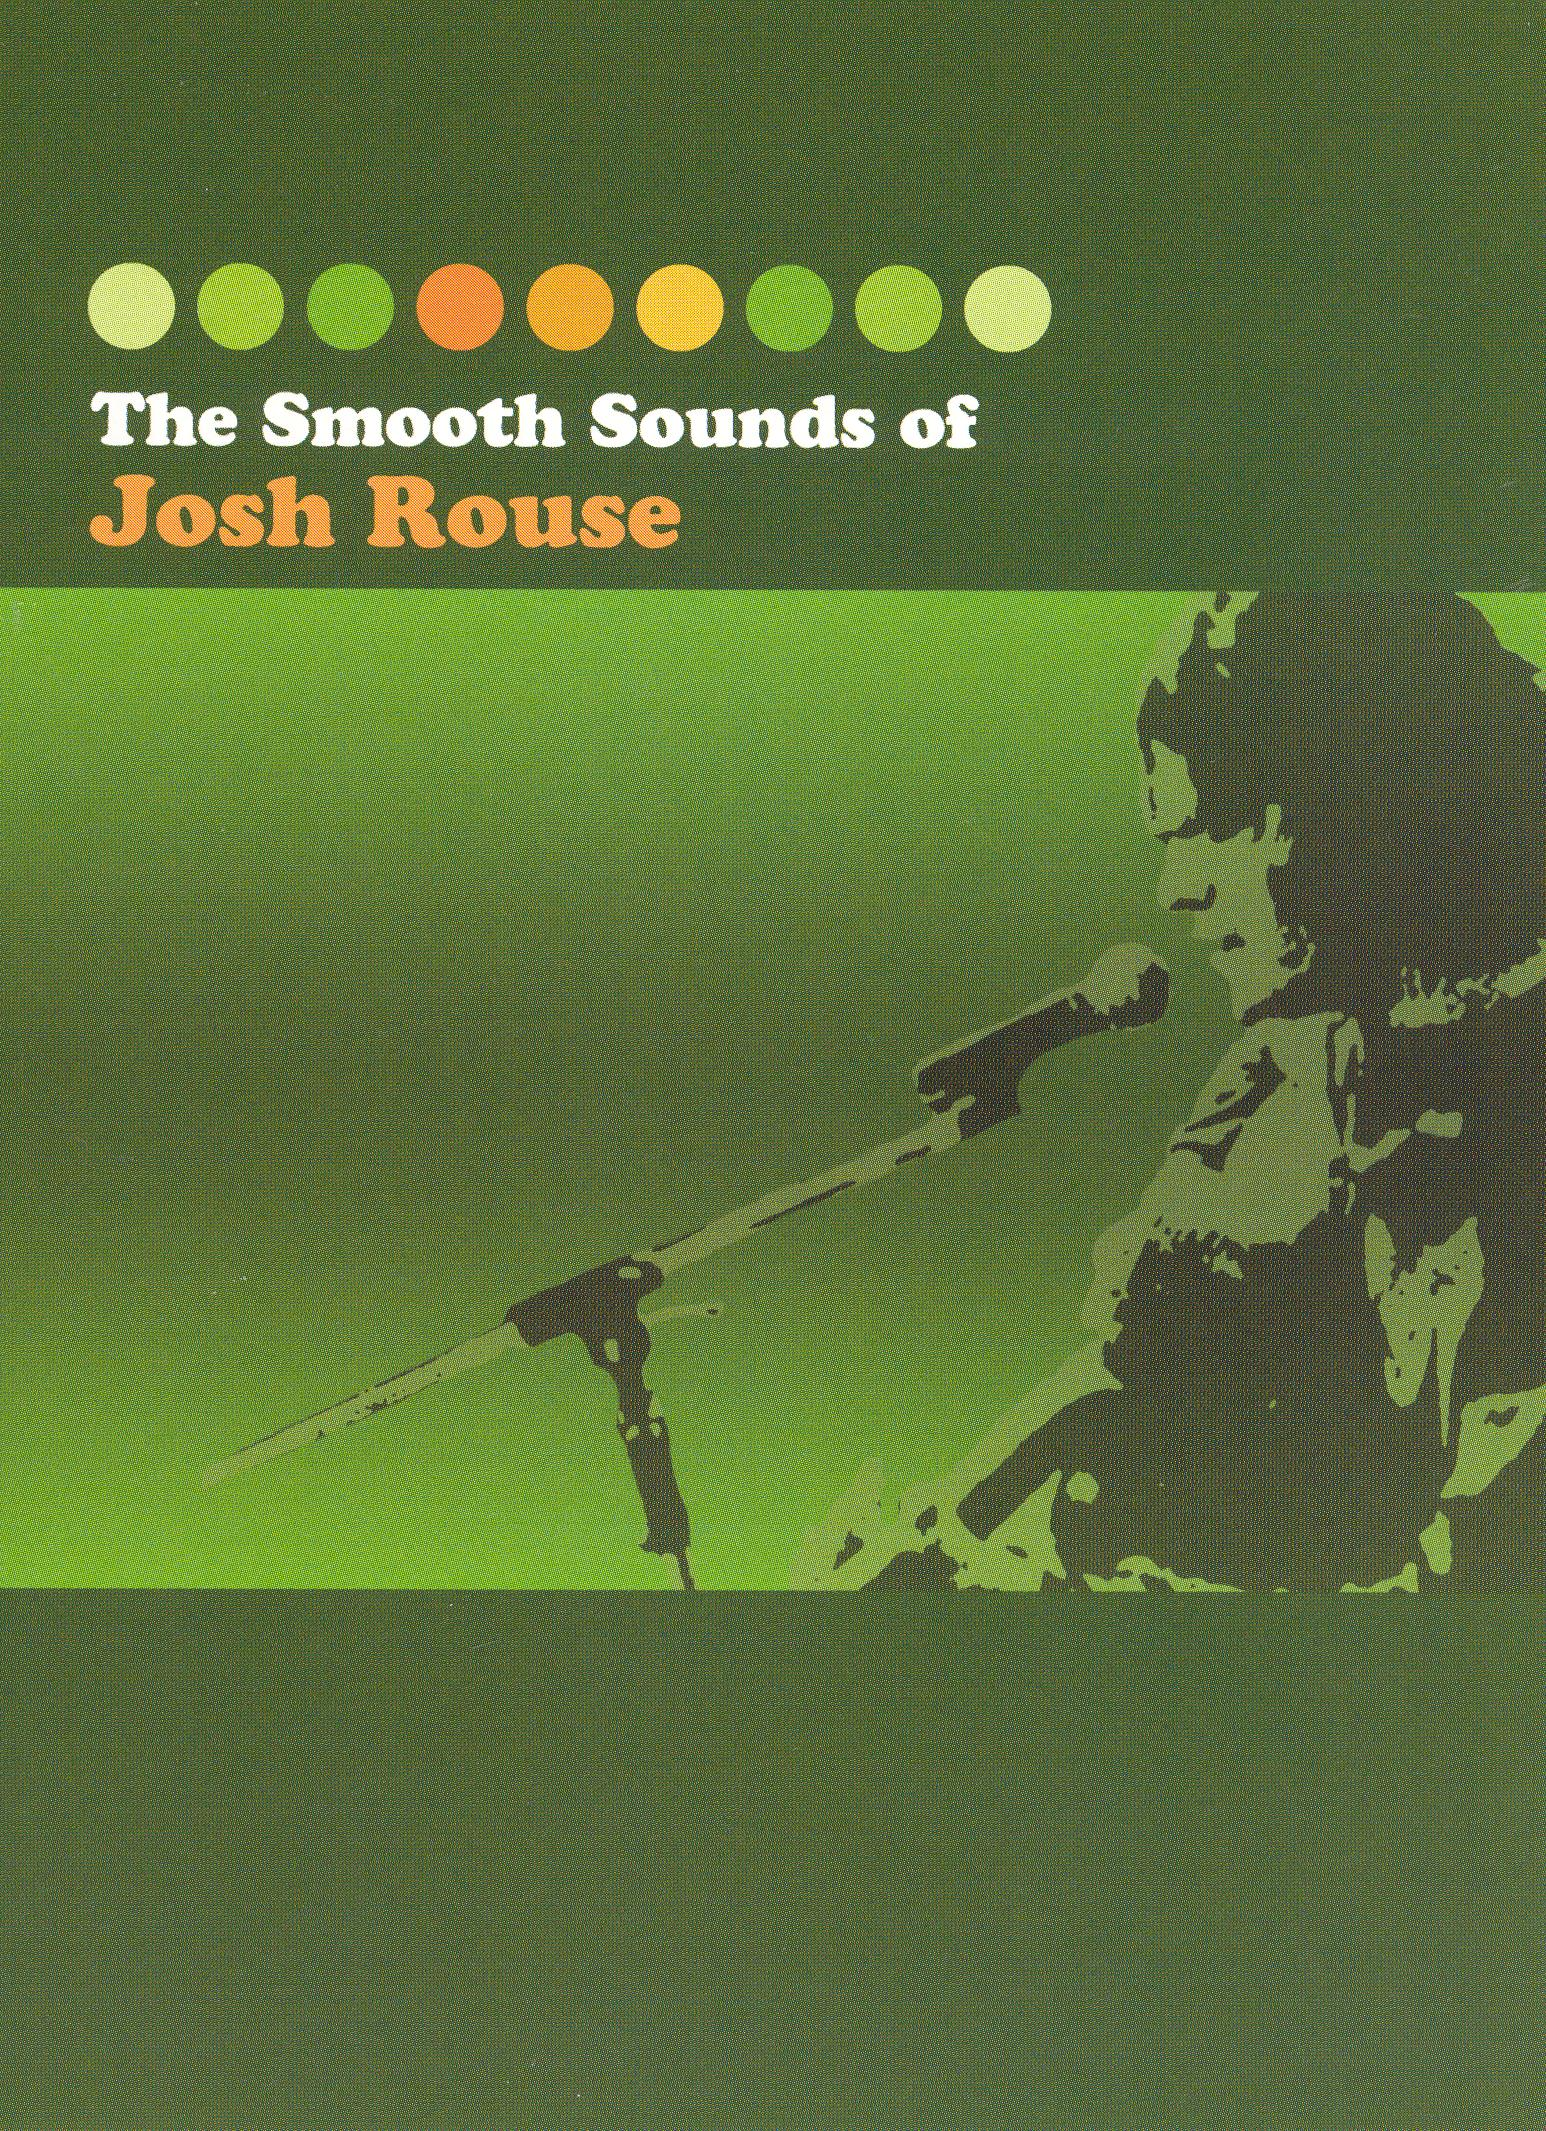 Josh Rouse: The Smooth Sounds of Josh Rouse